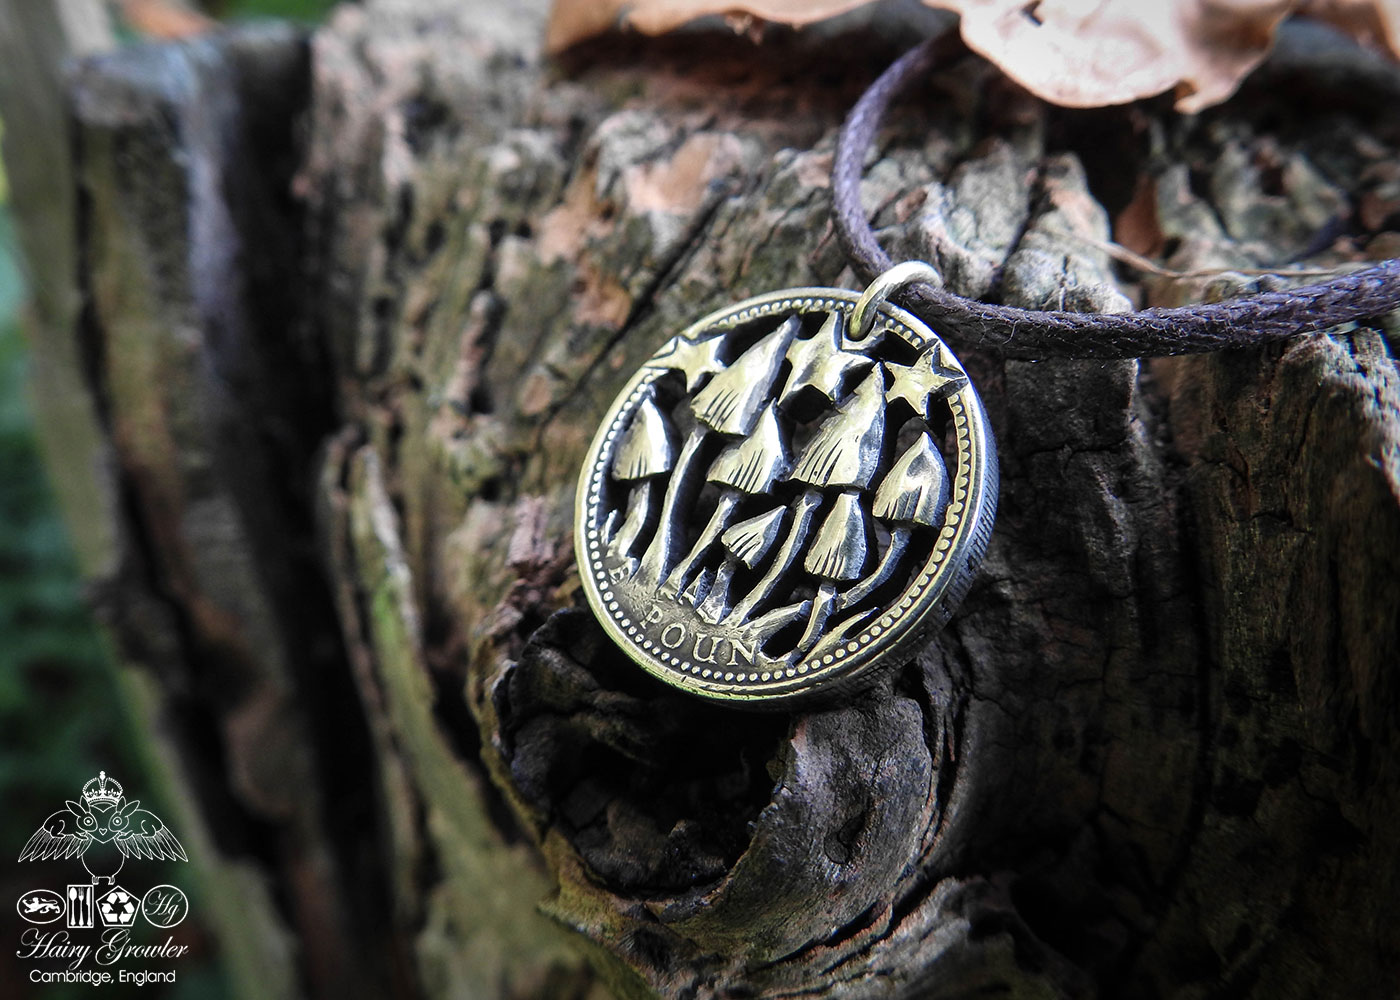 Hand Crafted and cut one pound coin pendants created from old, out of circulation pound coins, totally original and unique